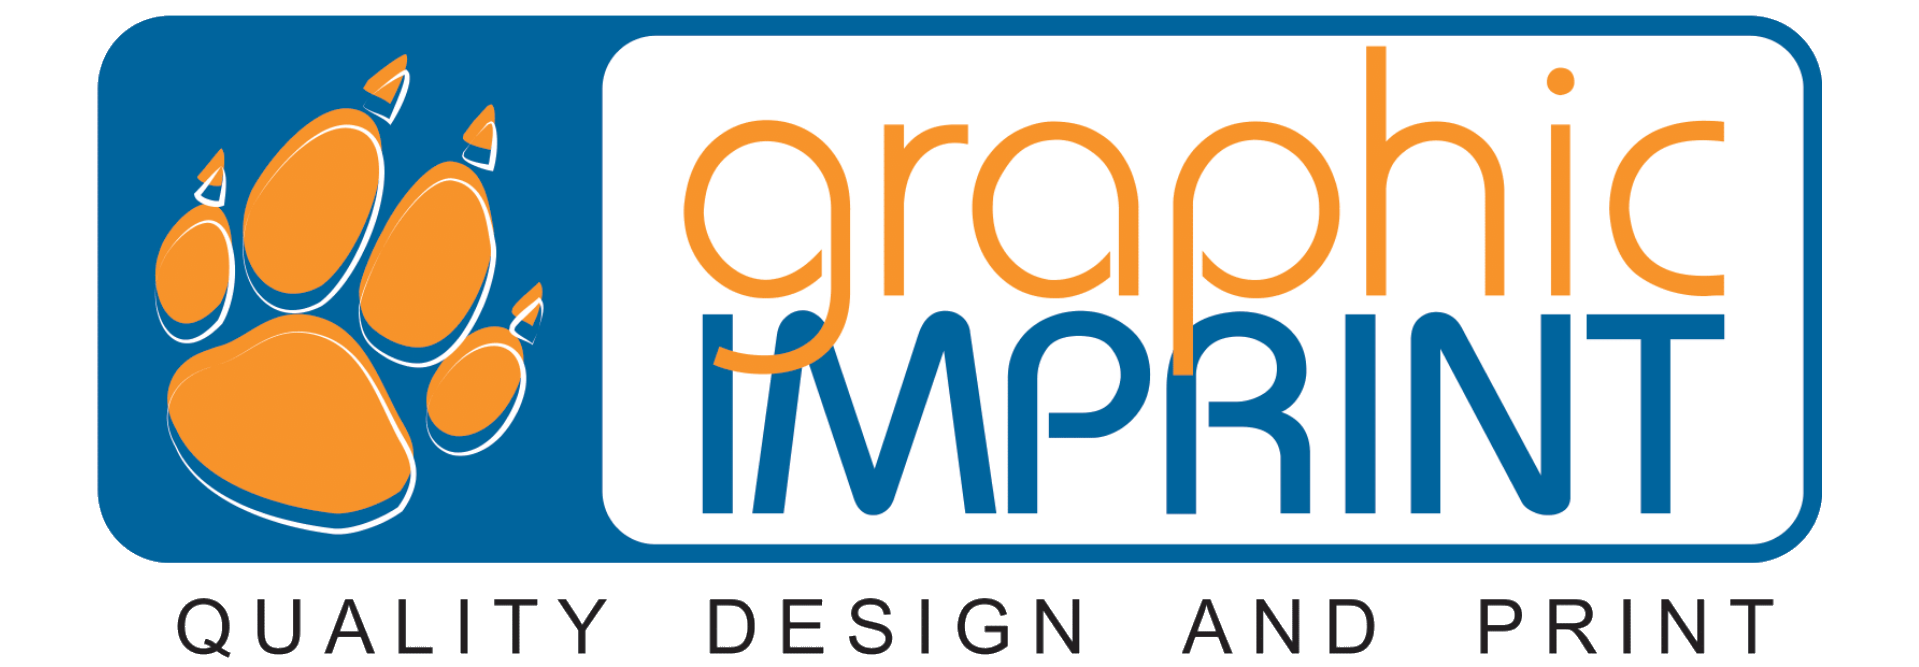 cropped-Graphic-PNG-Logo.png